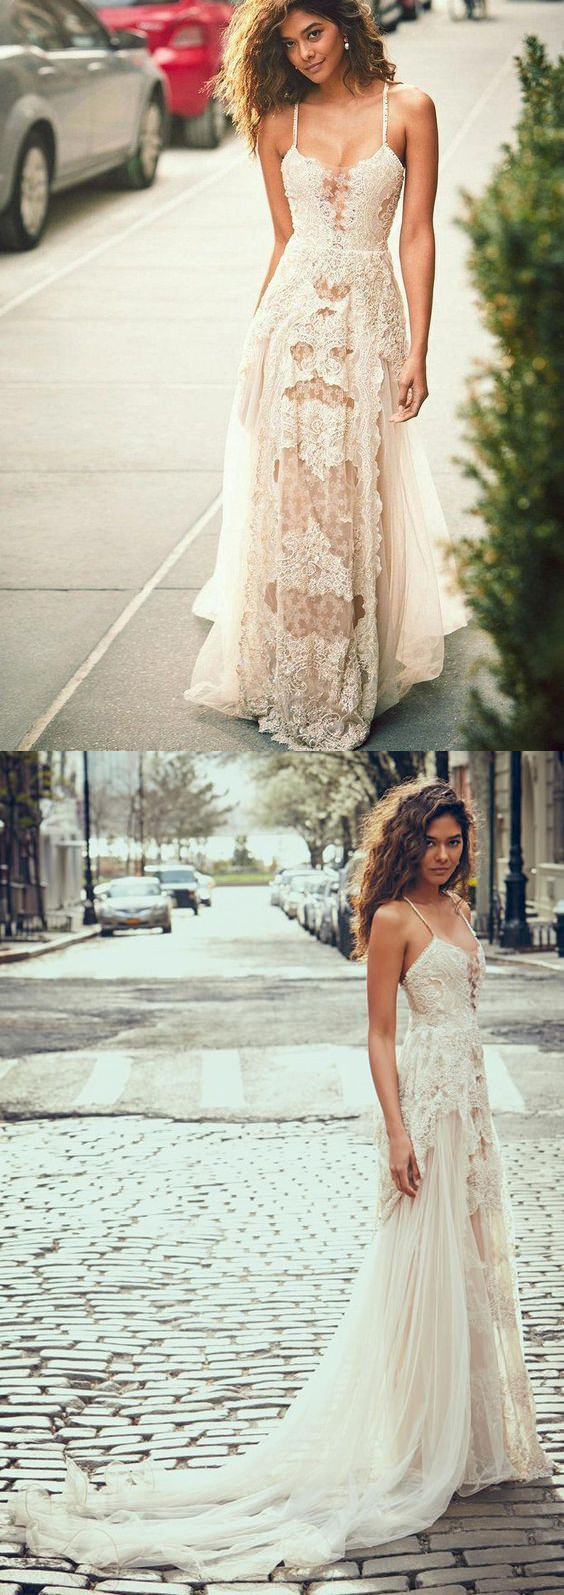 A-Line Spaghetti Straps Tulle Beach Wedding Dress, Boho Wedding Gown with Lace